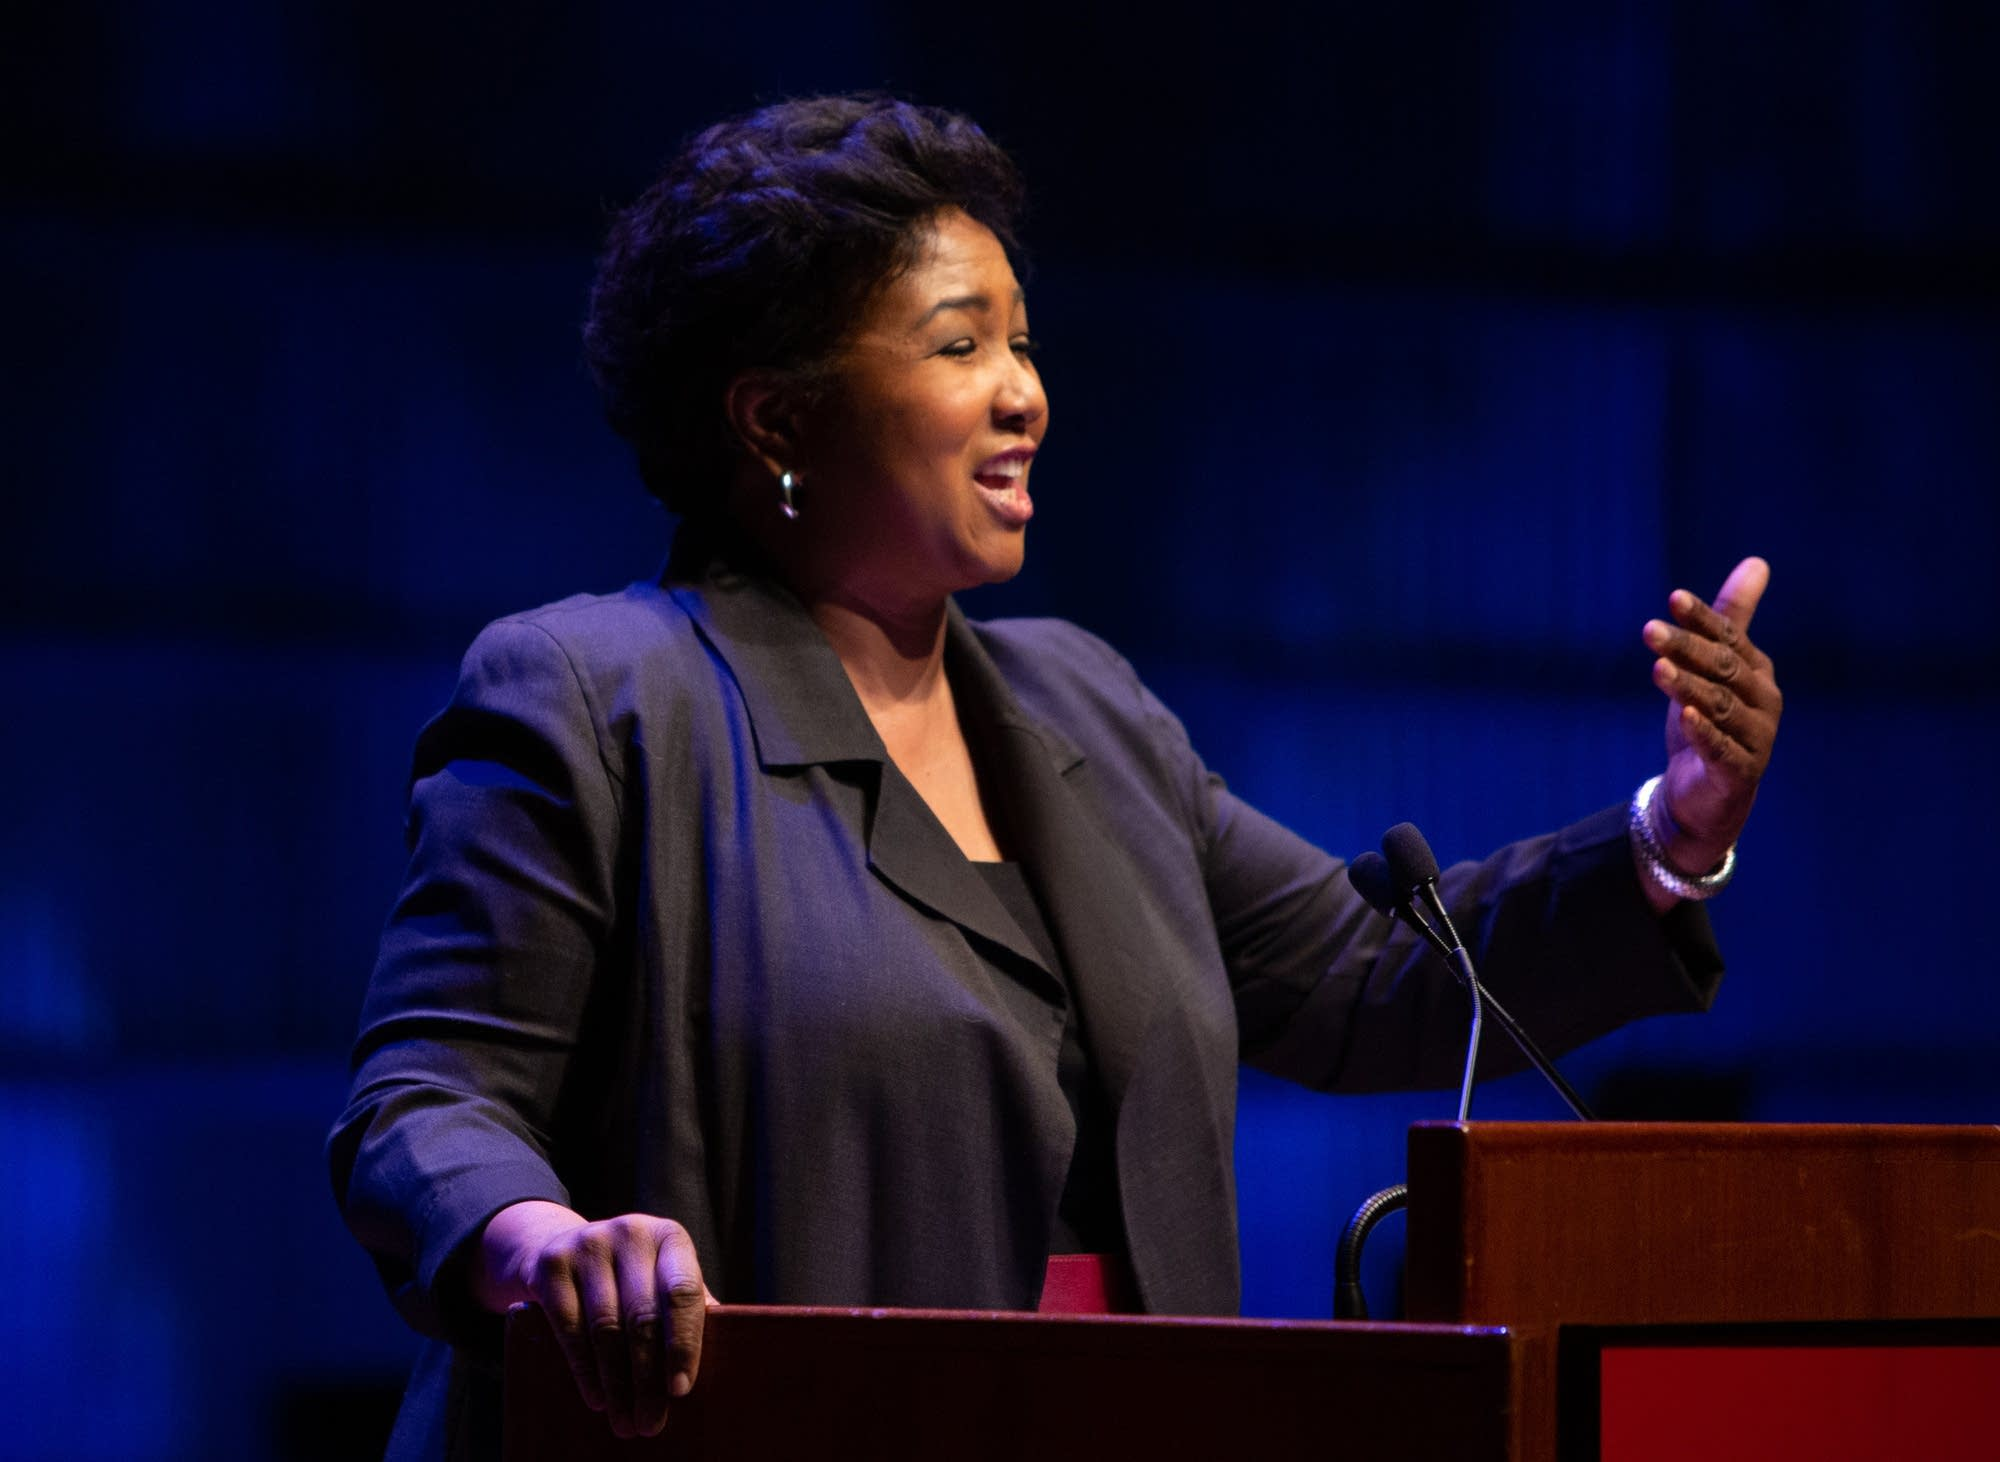 Dr. Mae Jemison speaks at the Martin Luther King Jr. Day Celebration.